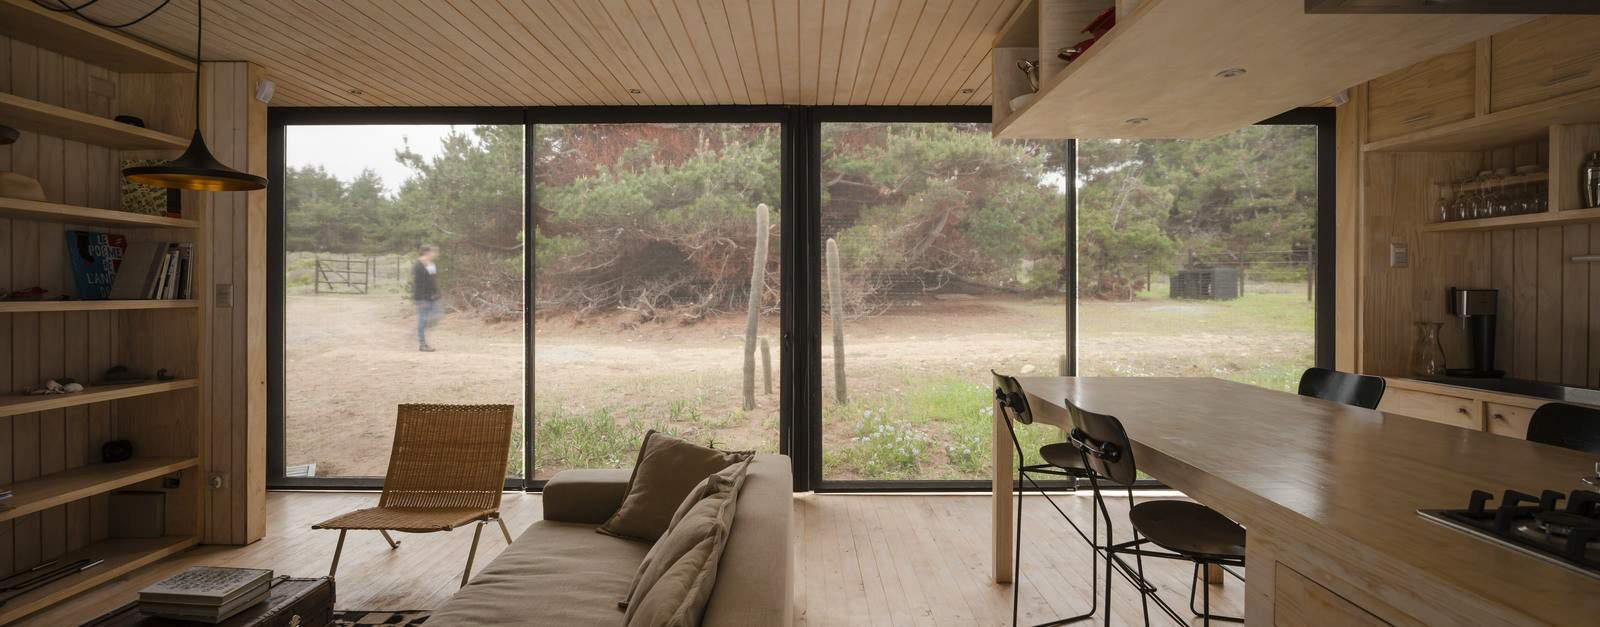 Remote Transportable Modular House in Chile by Felipe Assadi 11